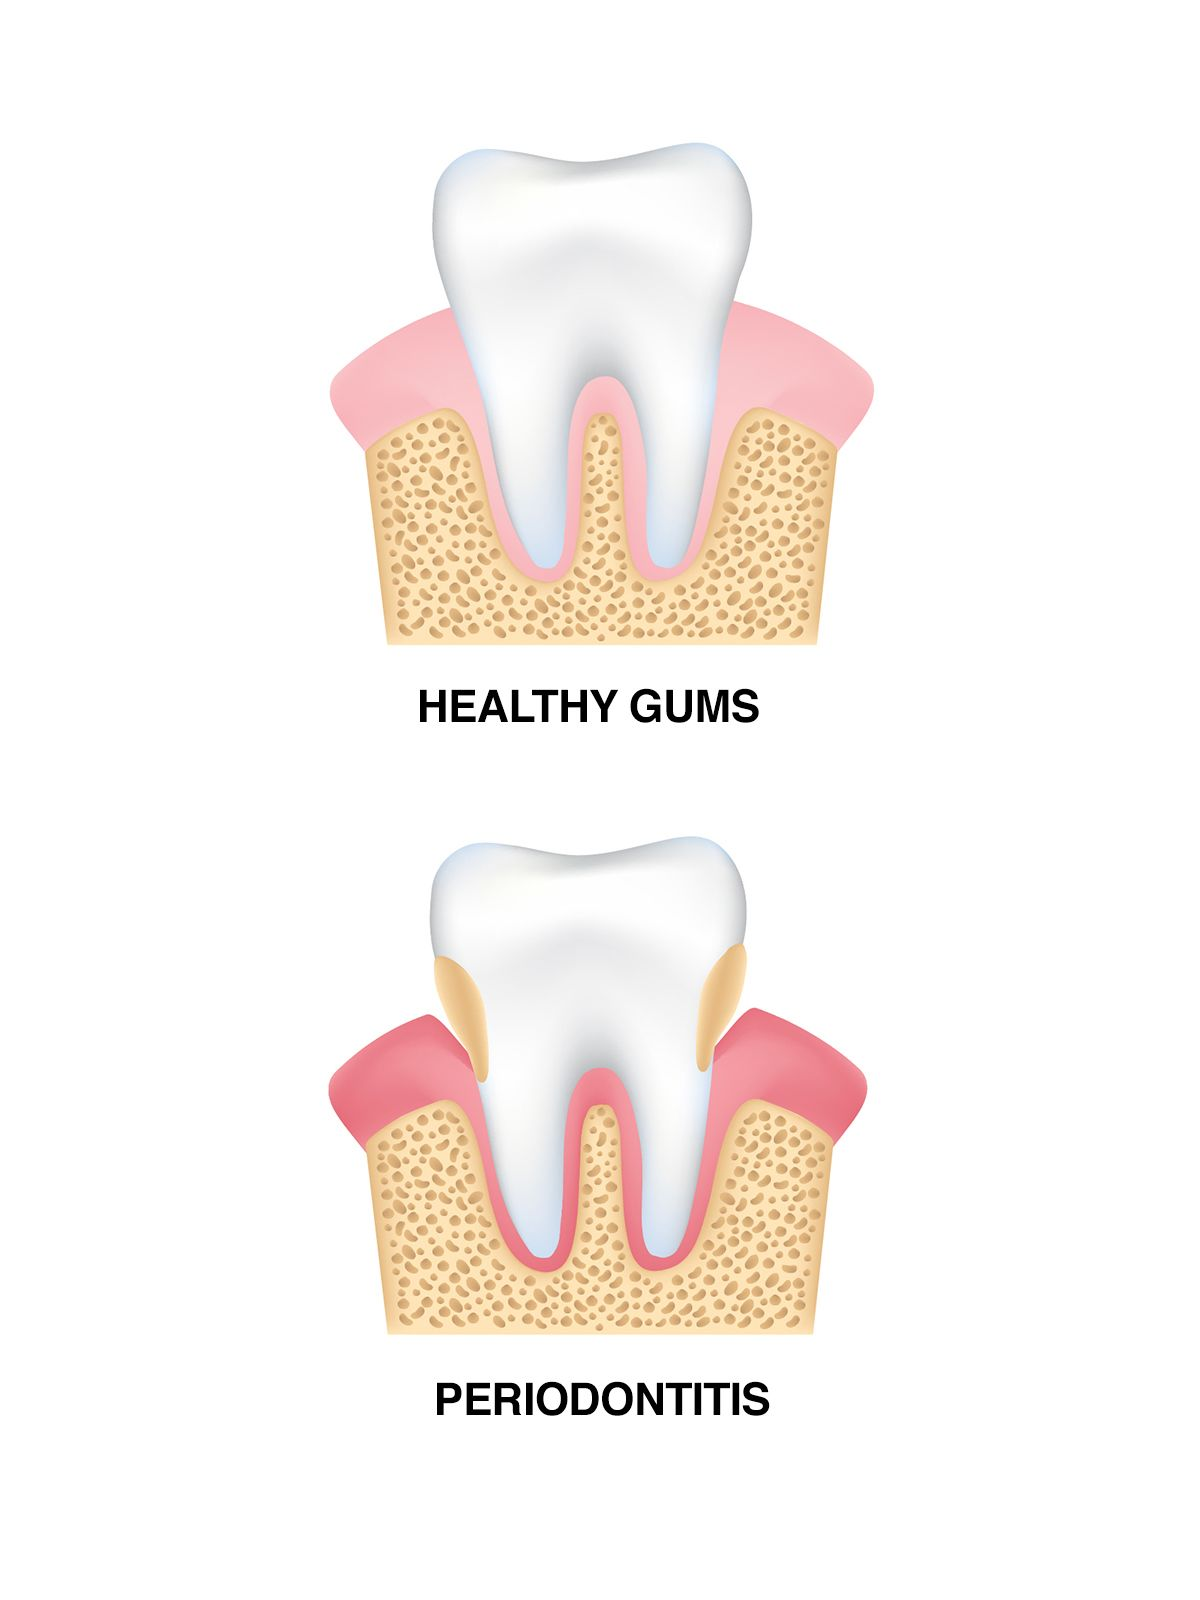 healthy gums vs. periodontitis